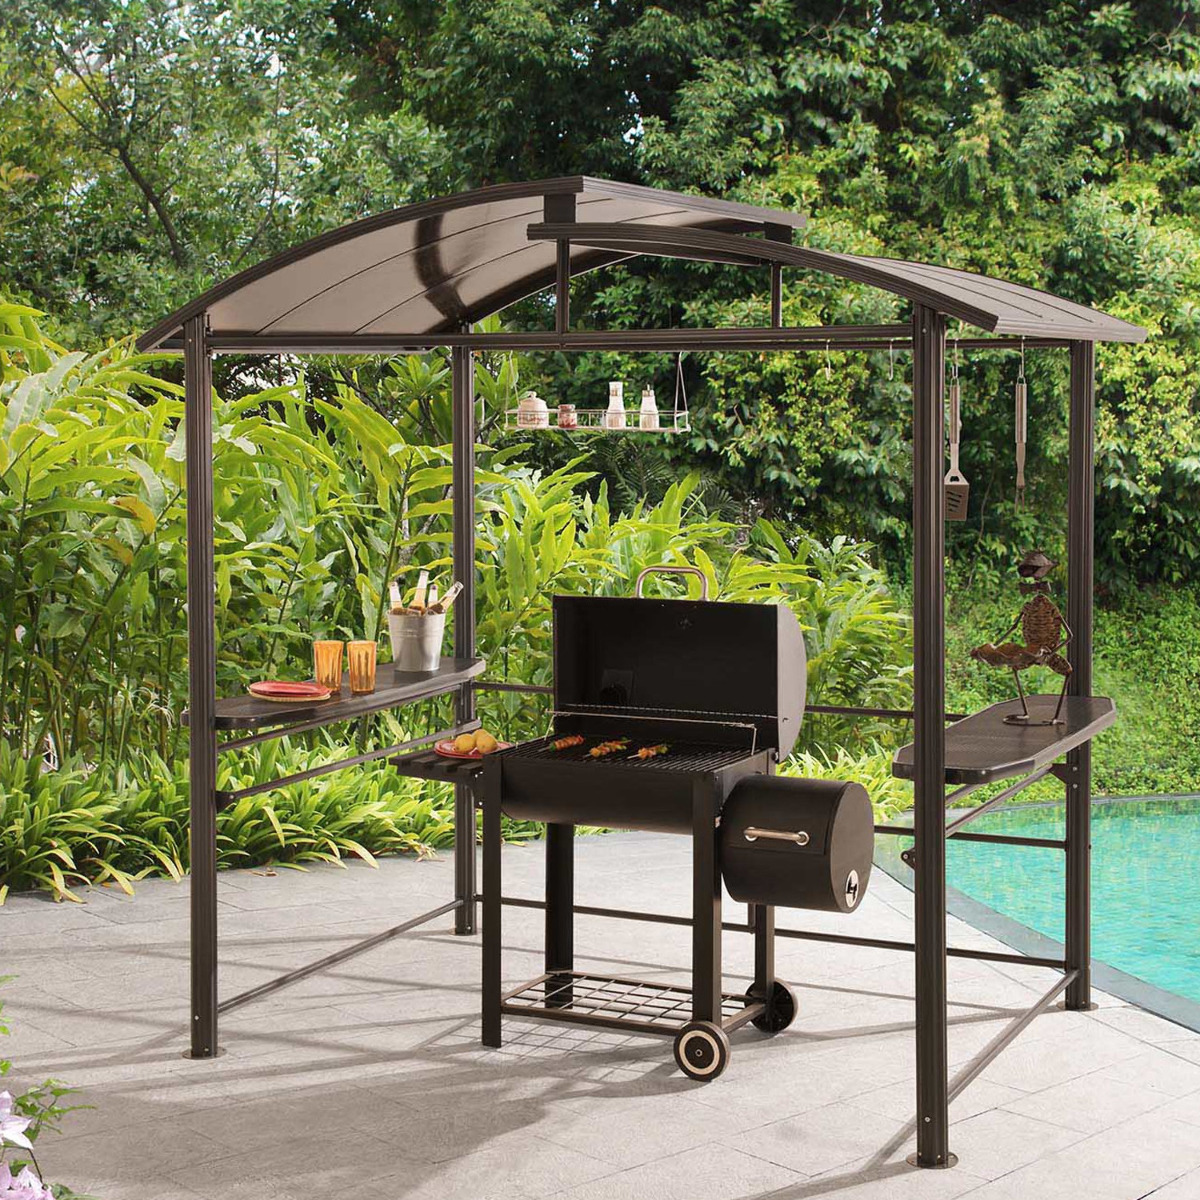 Metal Pergola With Canopy: Denver Steel Grill Gazebo 7.6-ft X 4.9-ft Outdoor Patio